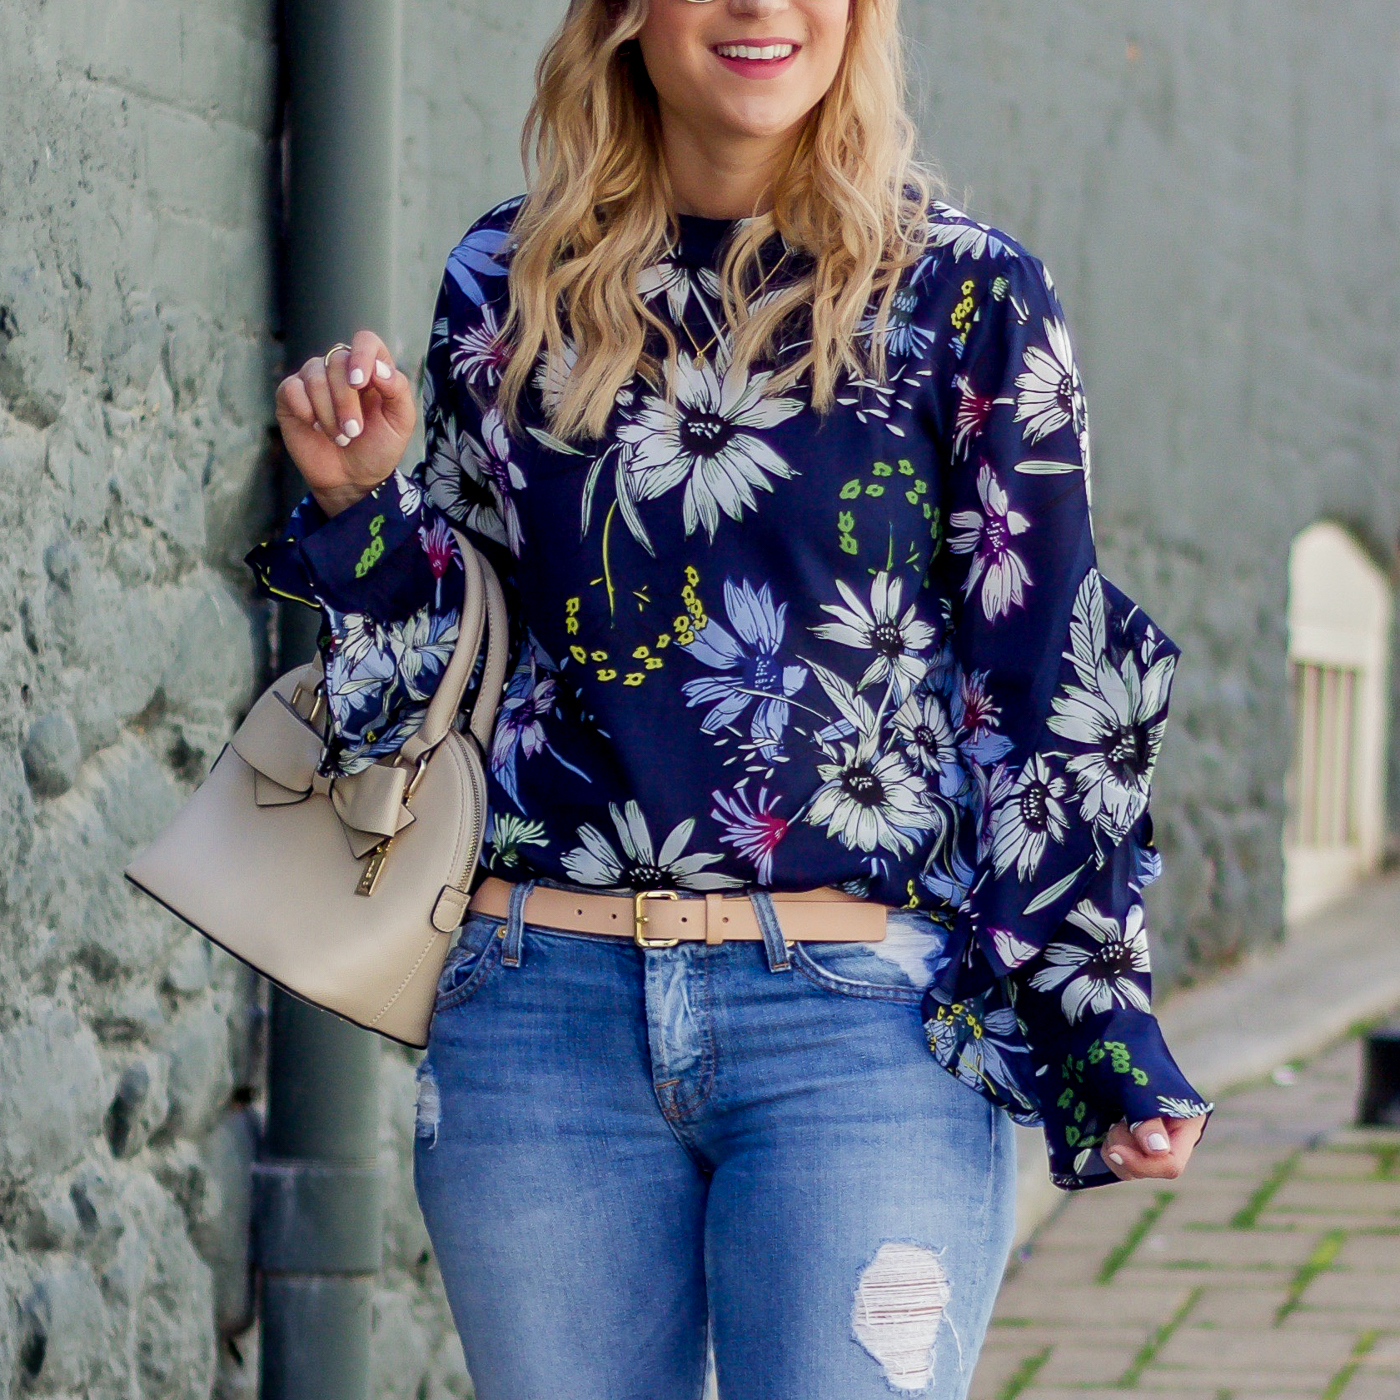 Spring outfit idea, fromToronto fashion and lifestyle blogger Jackie of Something About That